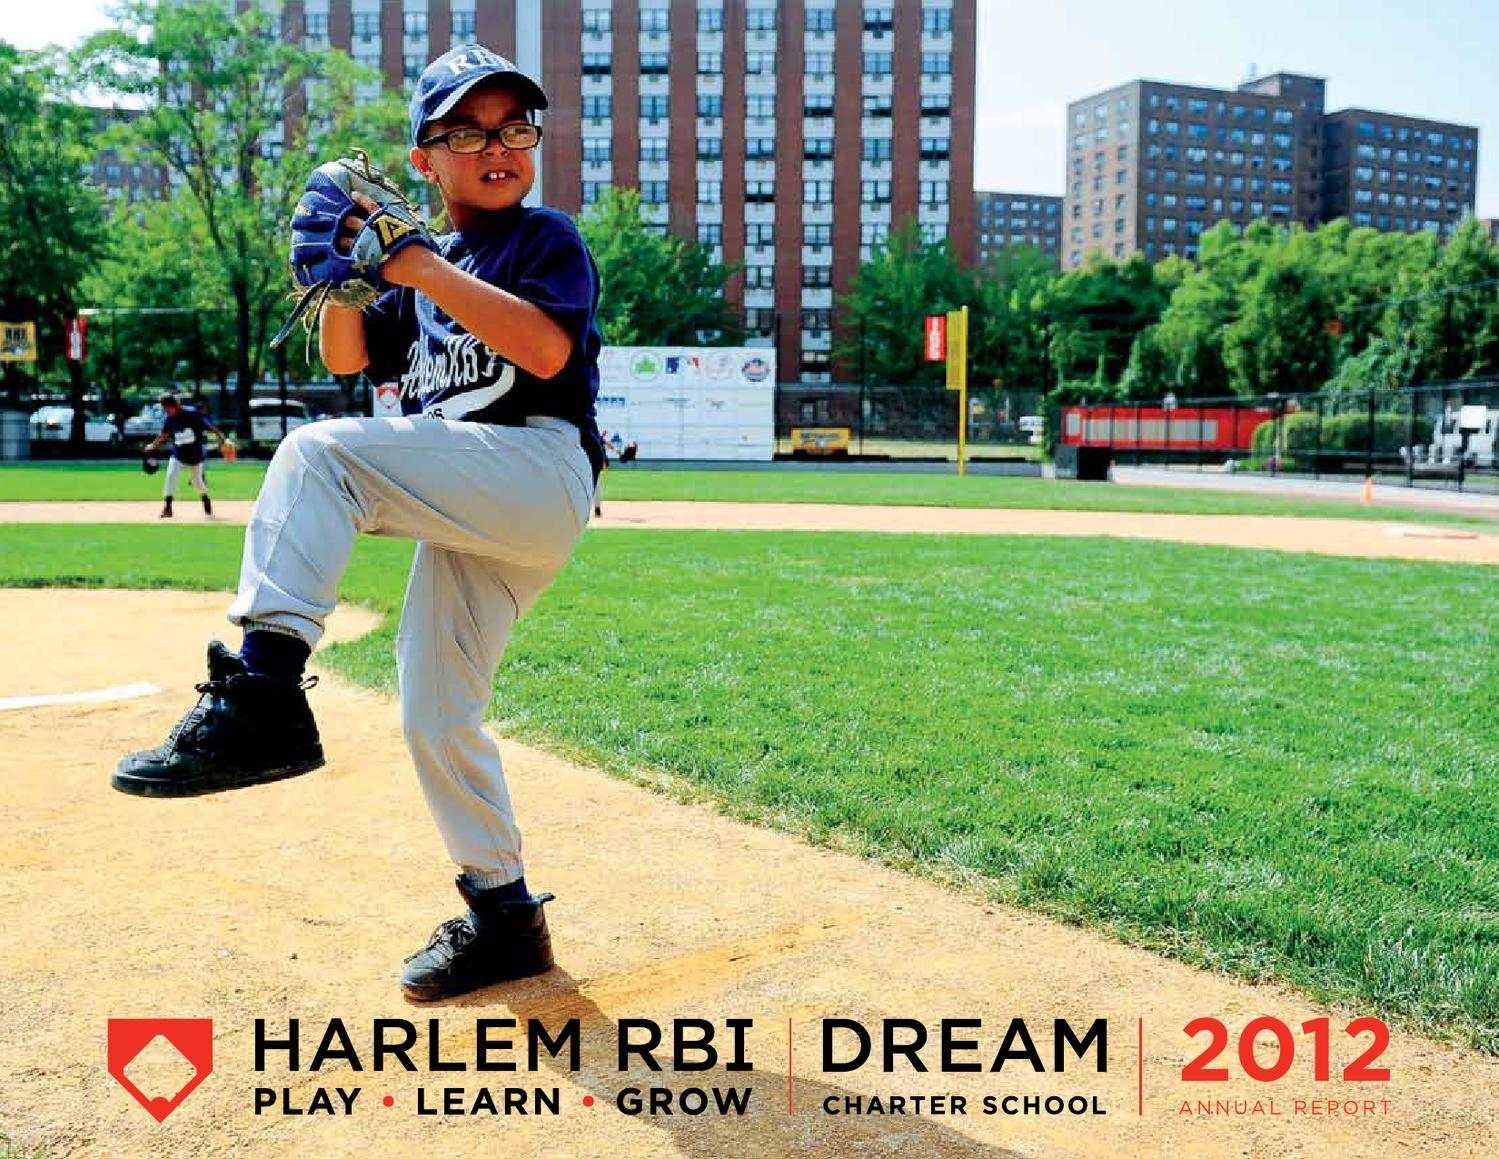 Harlem Rbi And Dream Charter School 2012 Annual Report By Harlem Rbi Issuu